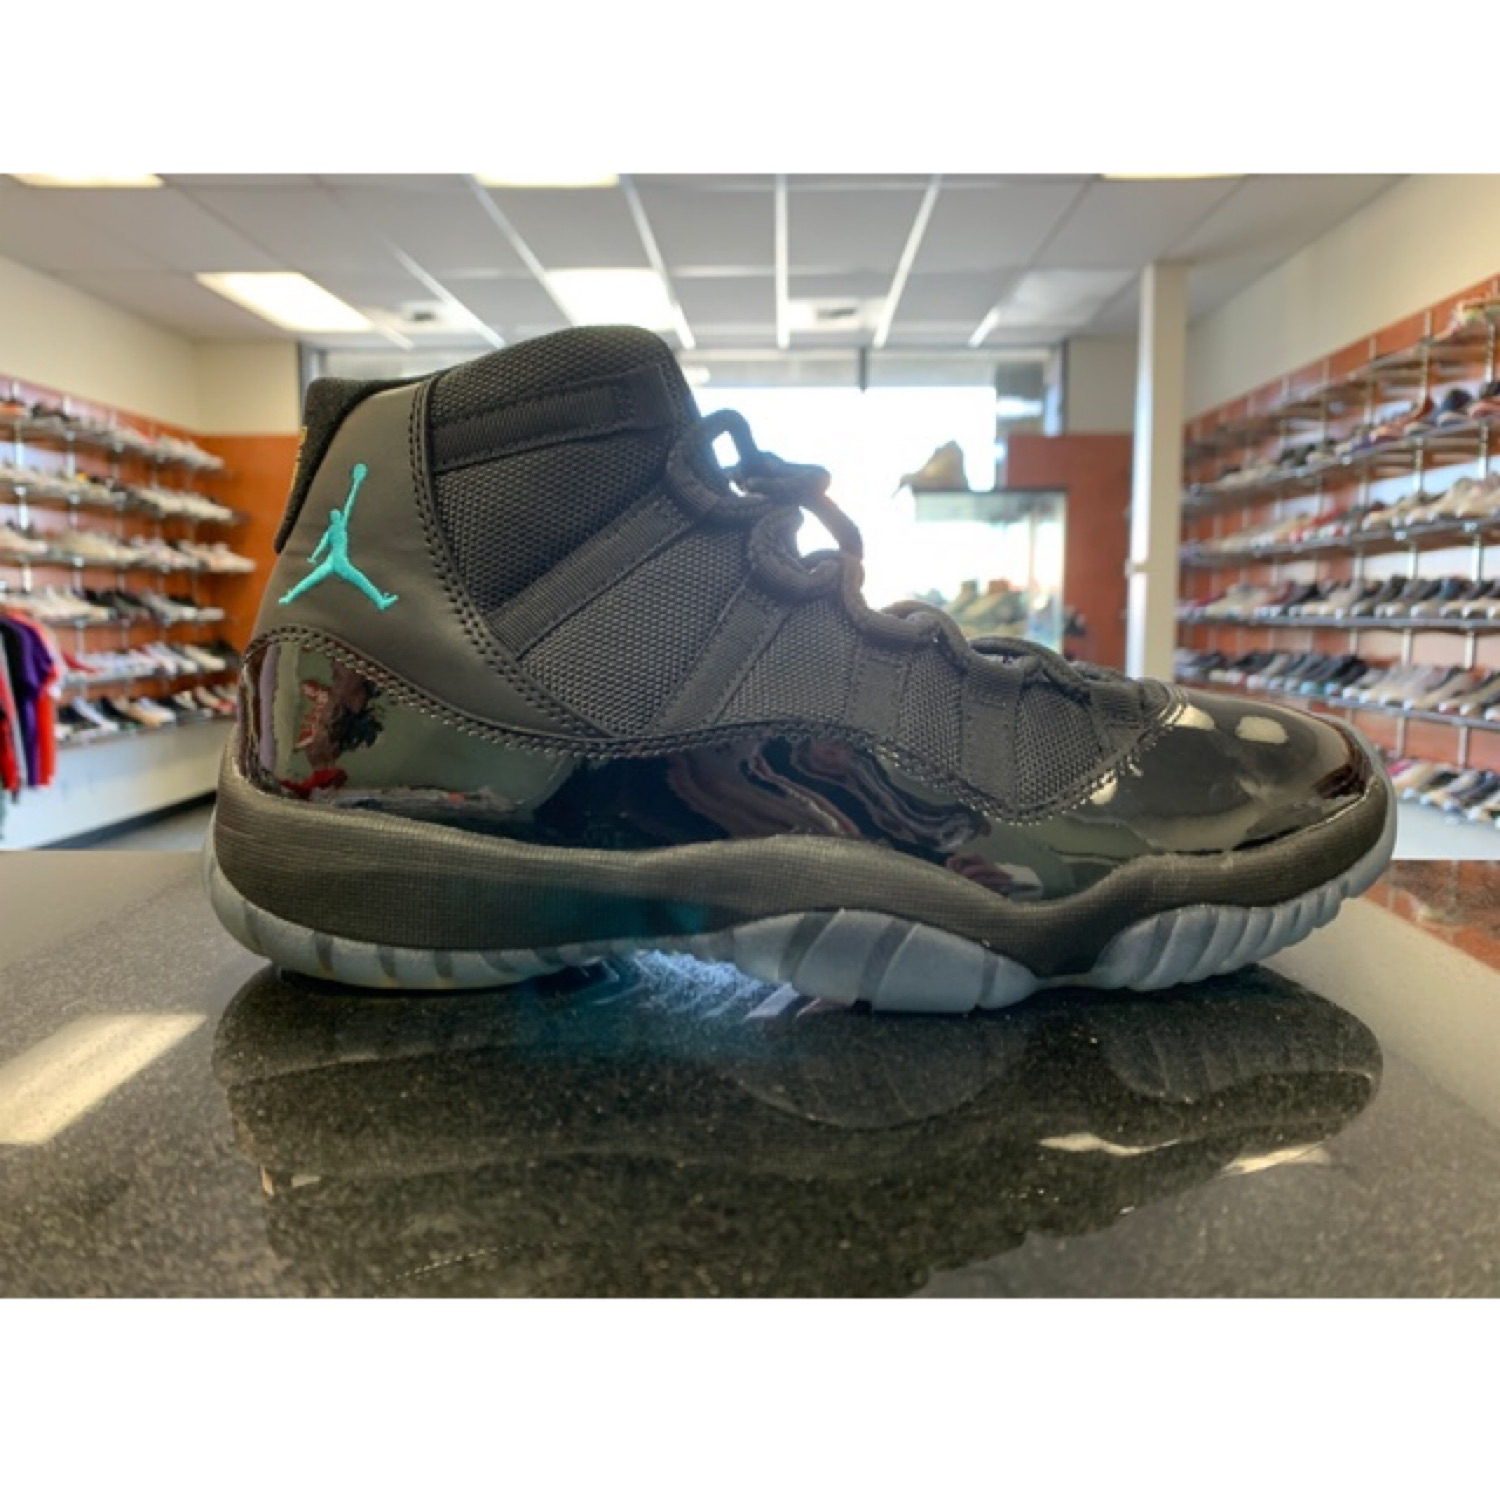 finest selection 05f11 e9bfe Nike Air Jordan 11 Gamma Blue Black